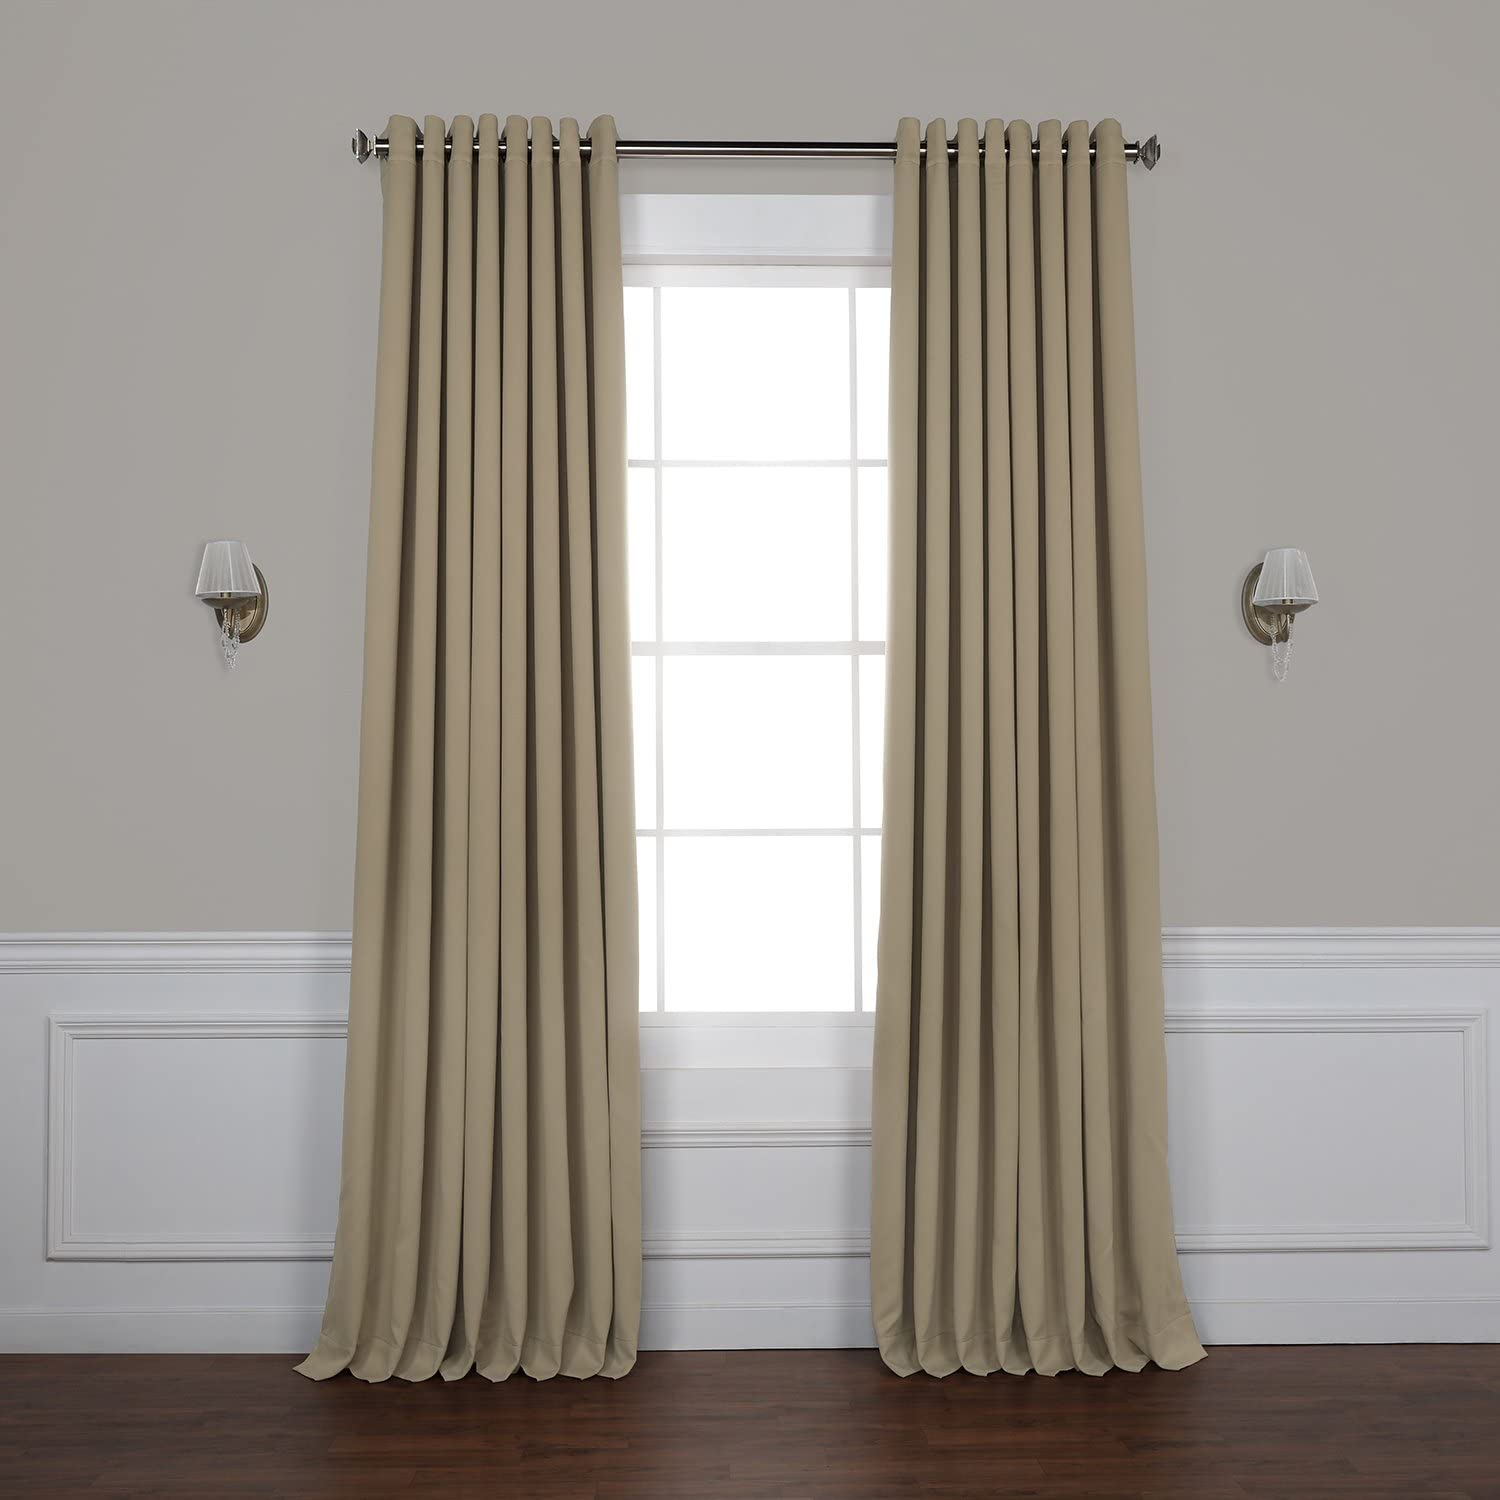 HPD HALF PRICE DRAPES BOCH-151304-108-GRDW Grommet Extra Wide Room Darkening Curtain 100 x 108 Classic Taupe 1 Panel